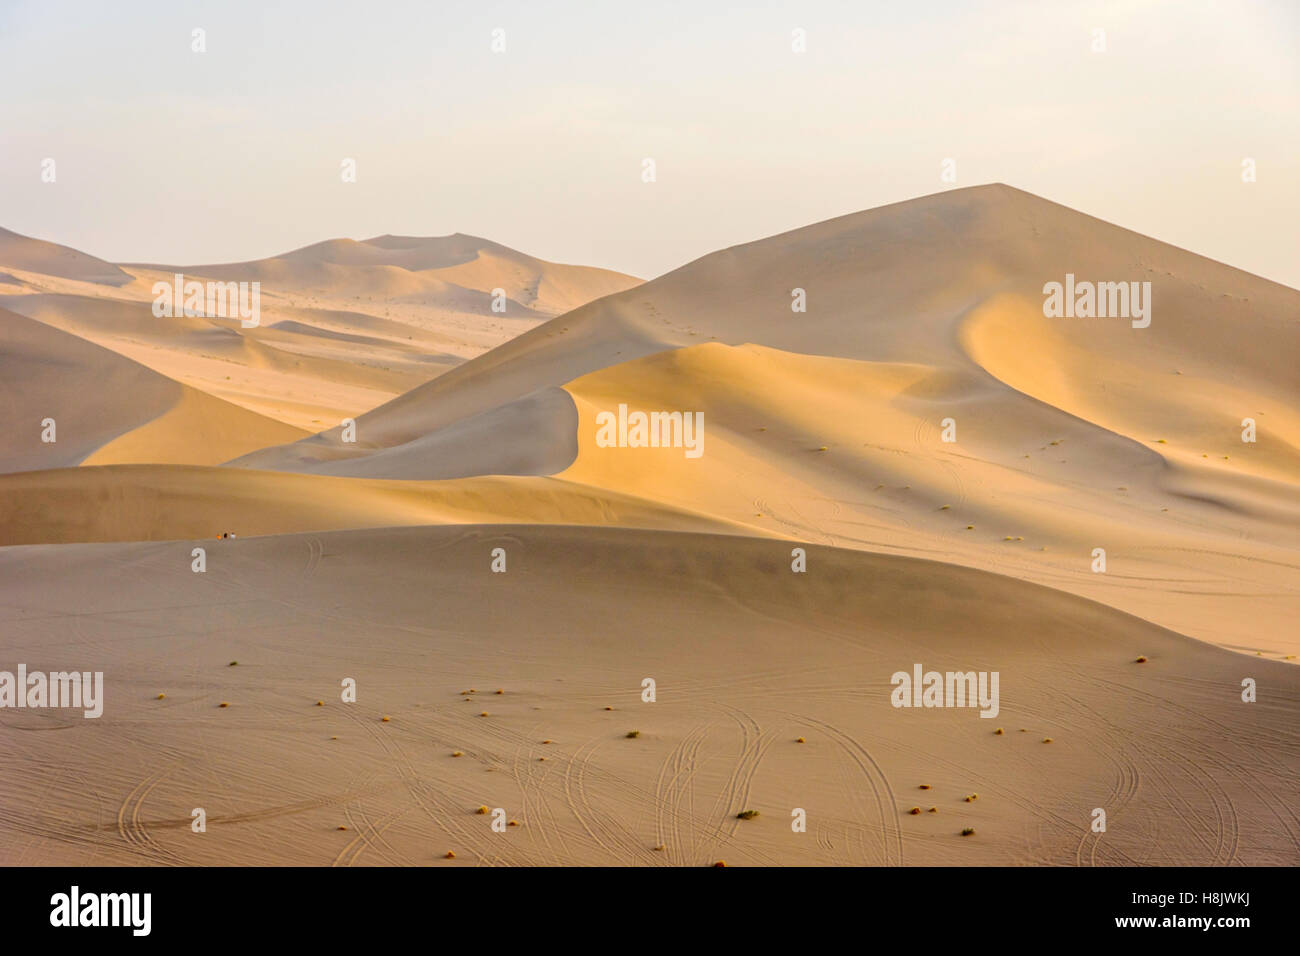 Colorful sand dunes in Gobi desert in afternoon sun, Dunhuang, China - Stock Image